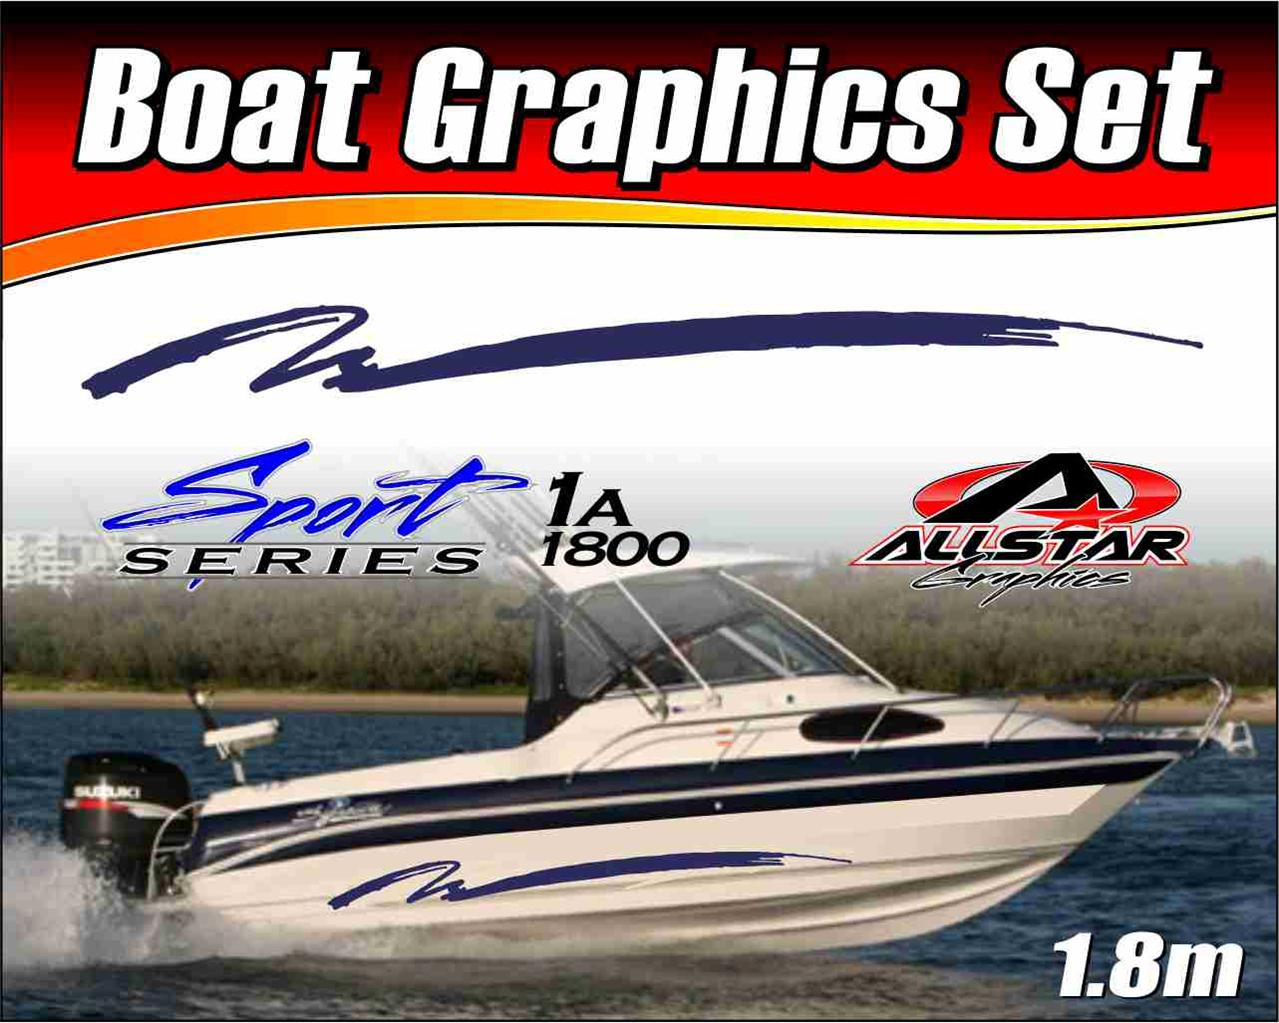 Boat-Graphic-Sticker-Kit-Vinyl-stripe-decal-for-Marine-or-Automotive-SS-1A1800